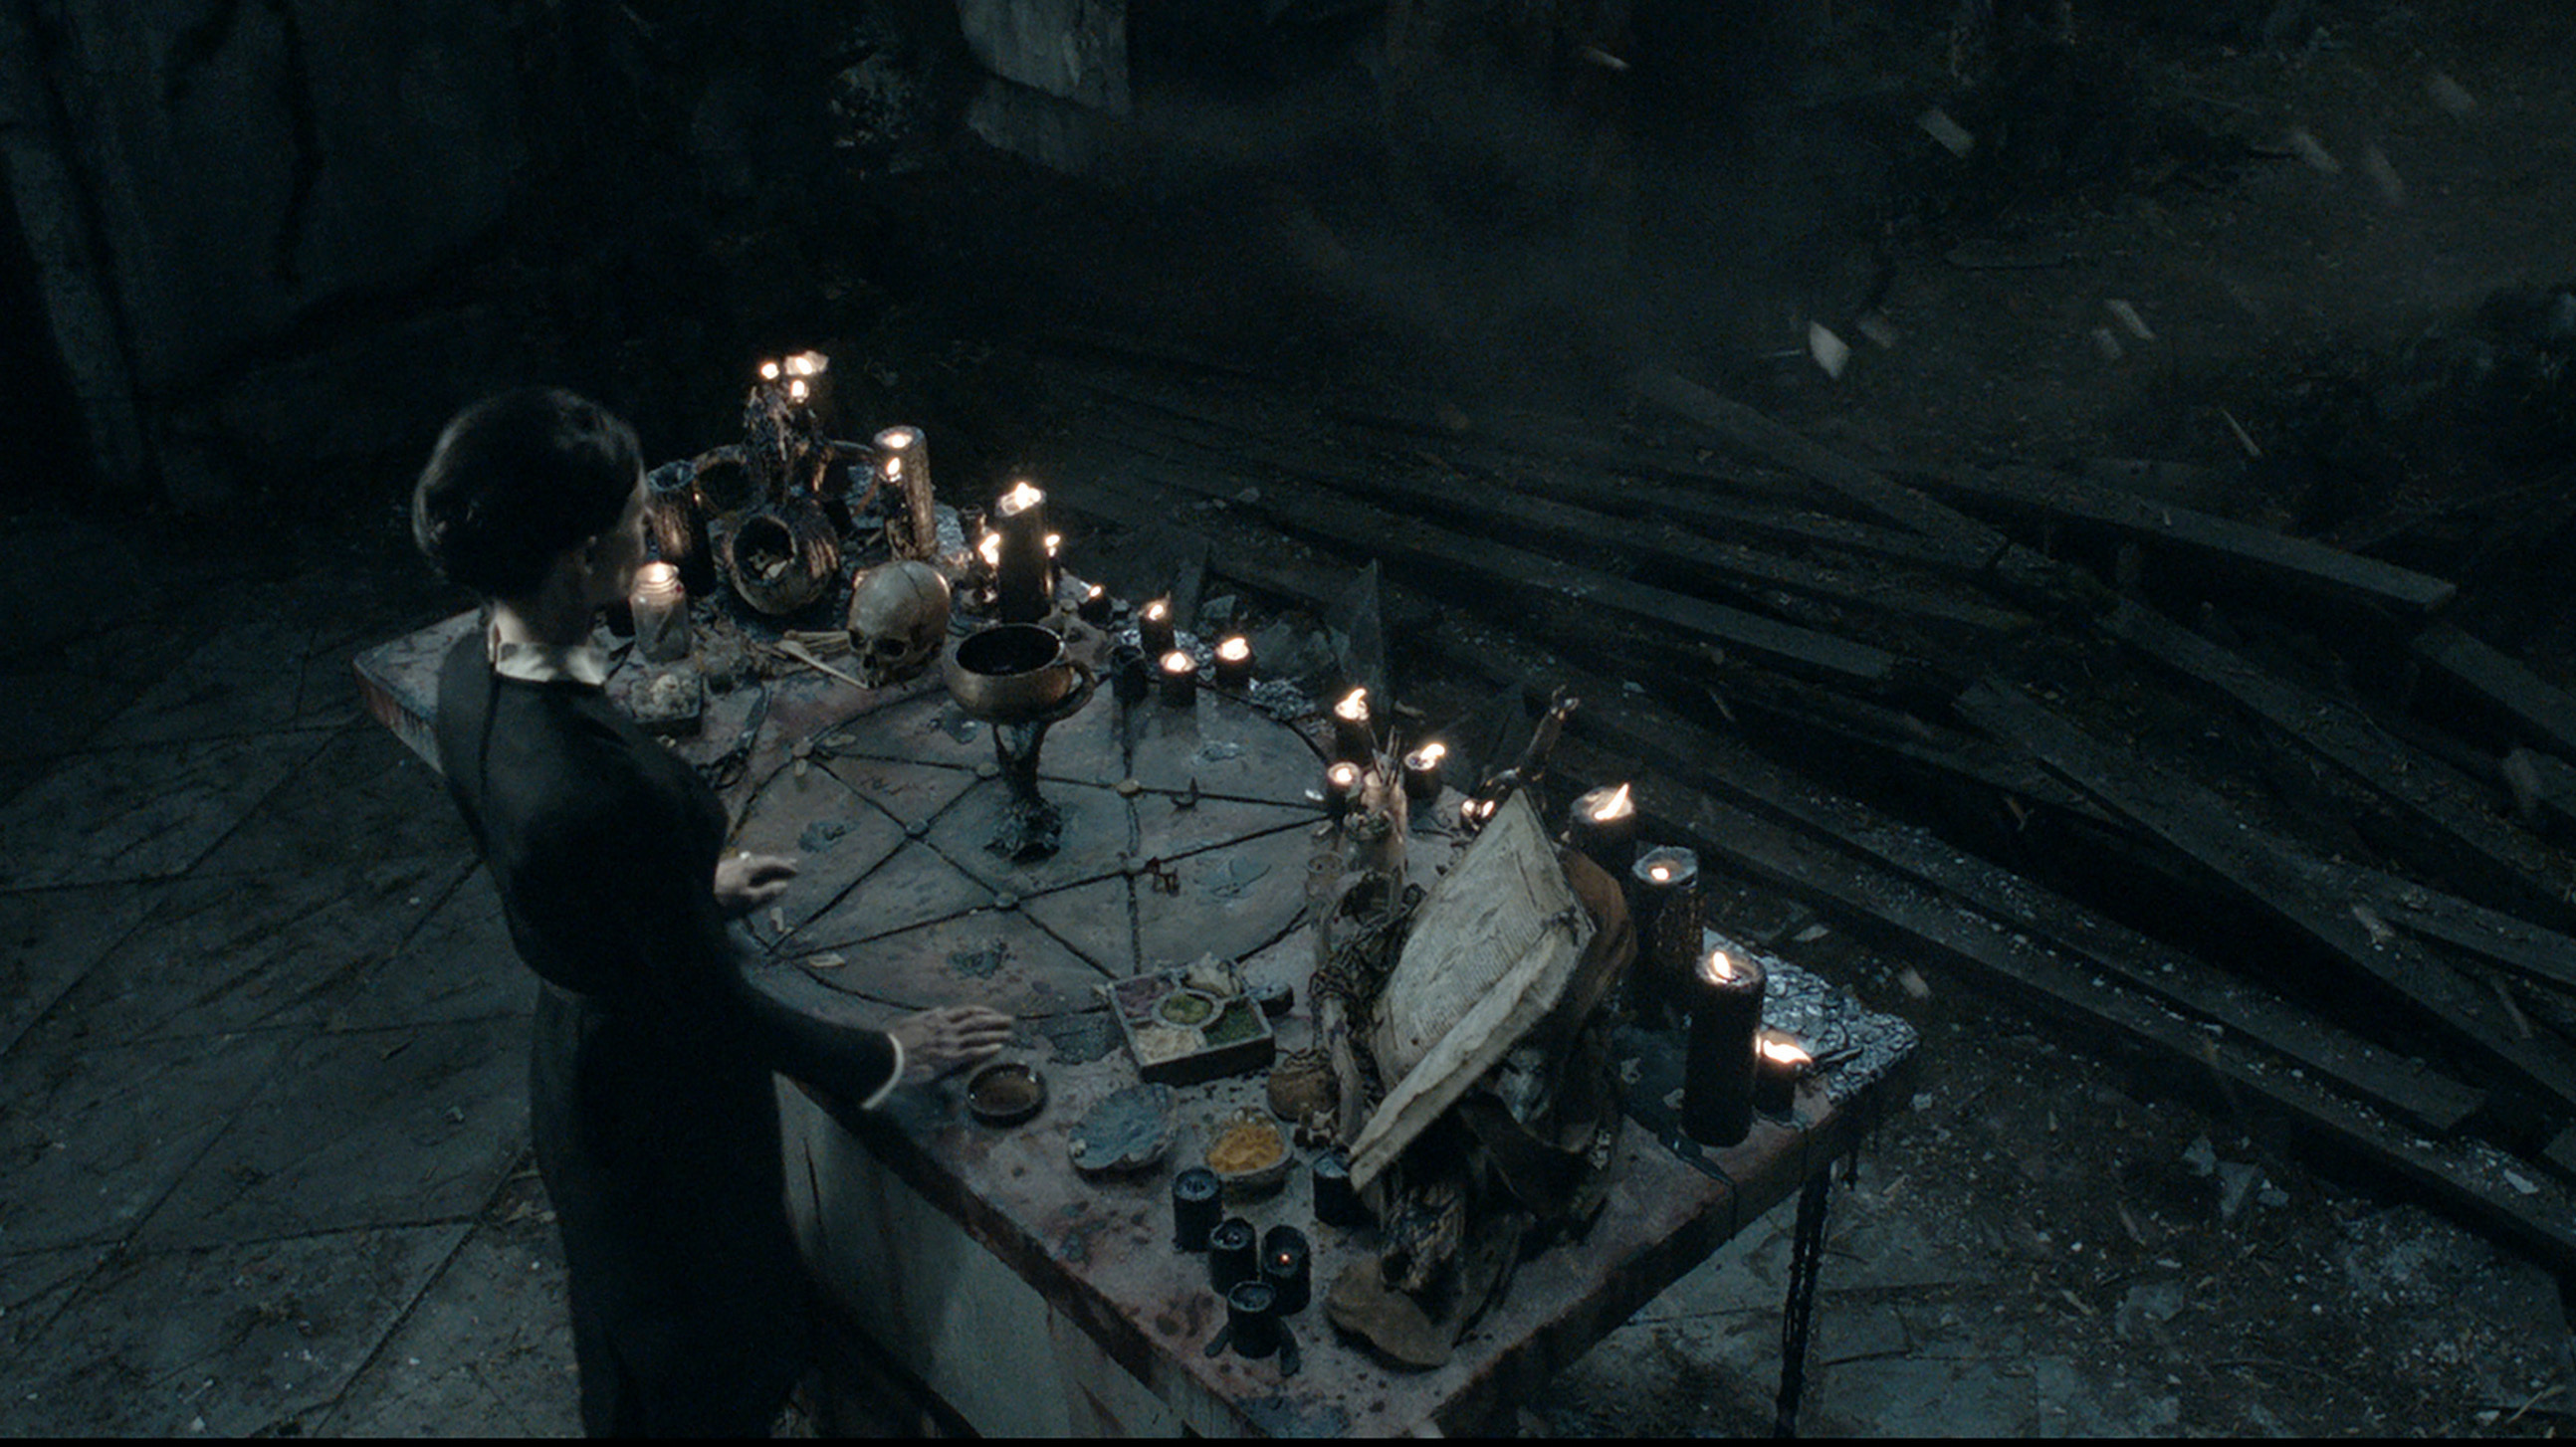 The Occultist, as she's called in the film, stands before her altar. Her aesthetic is very clearly witchy dark academia.